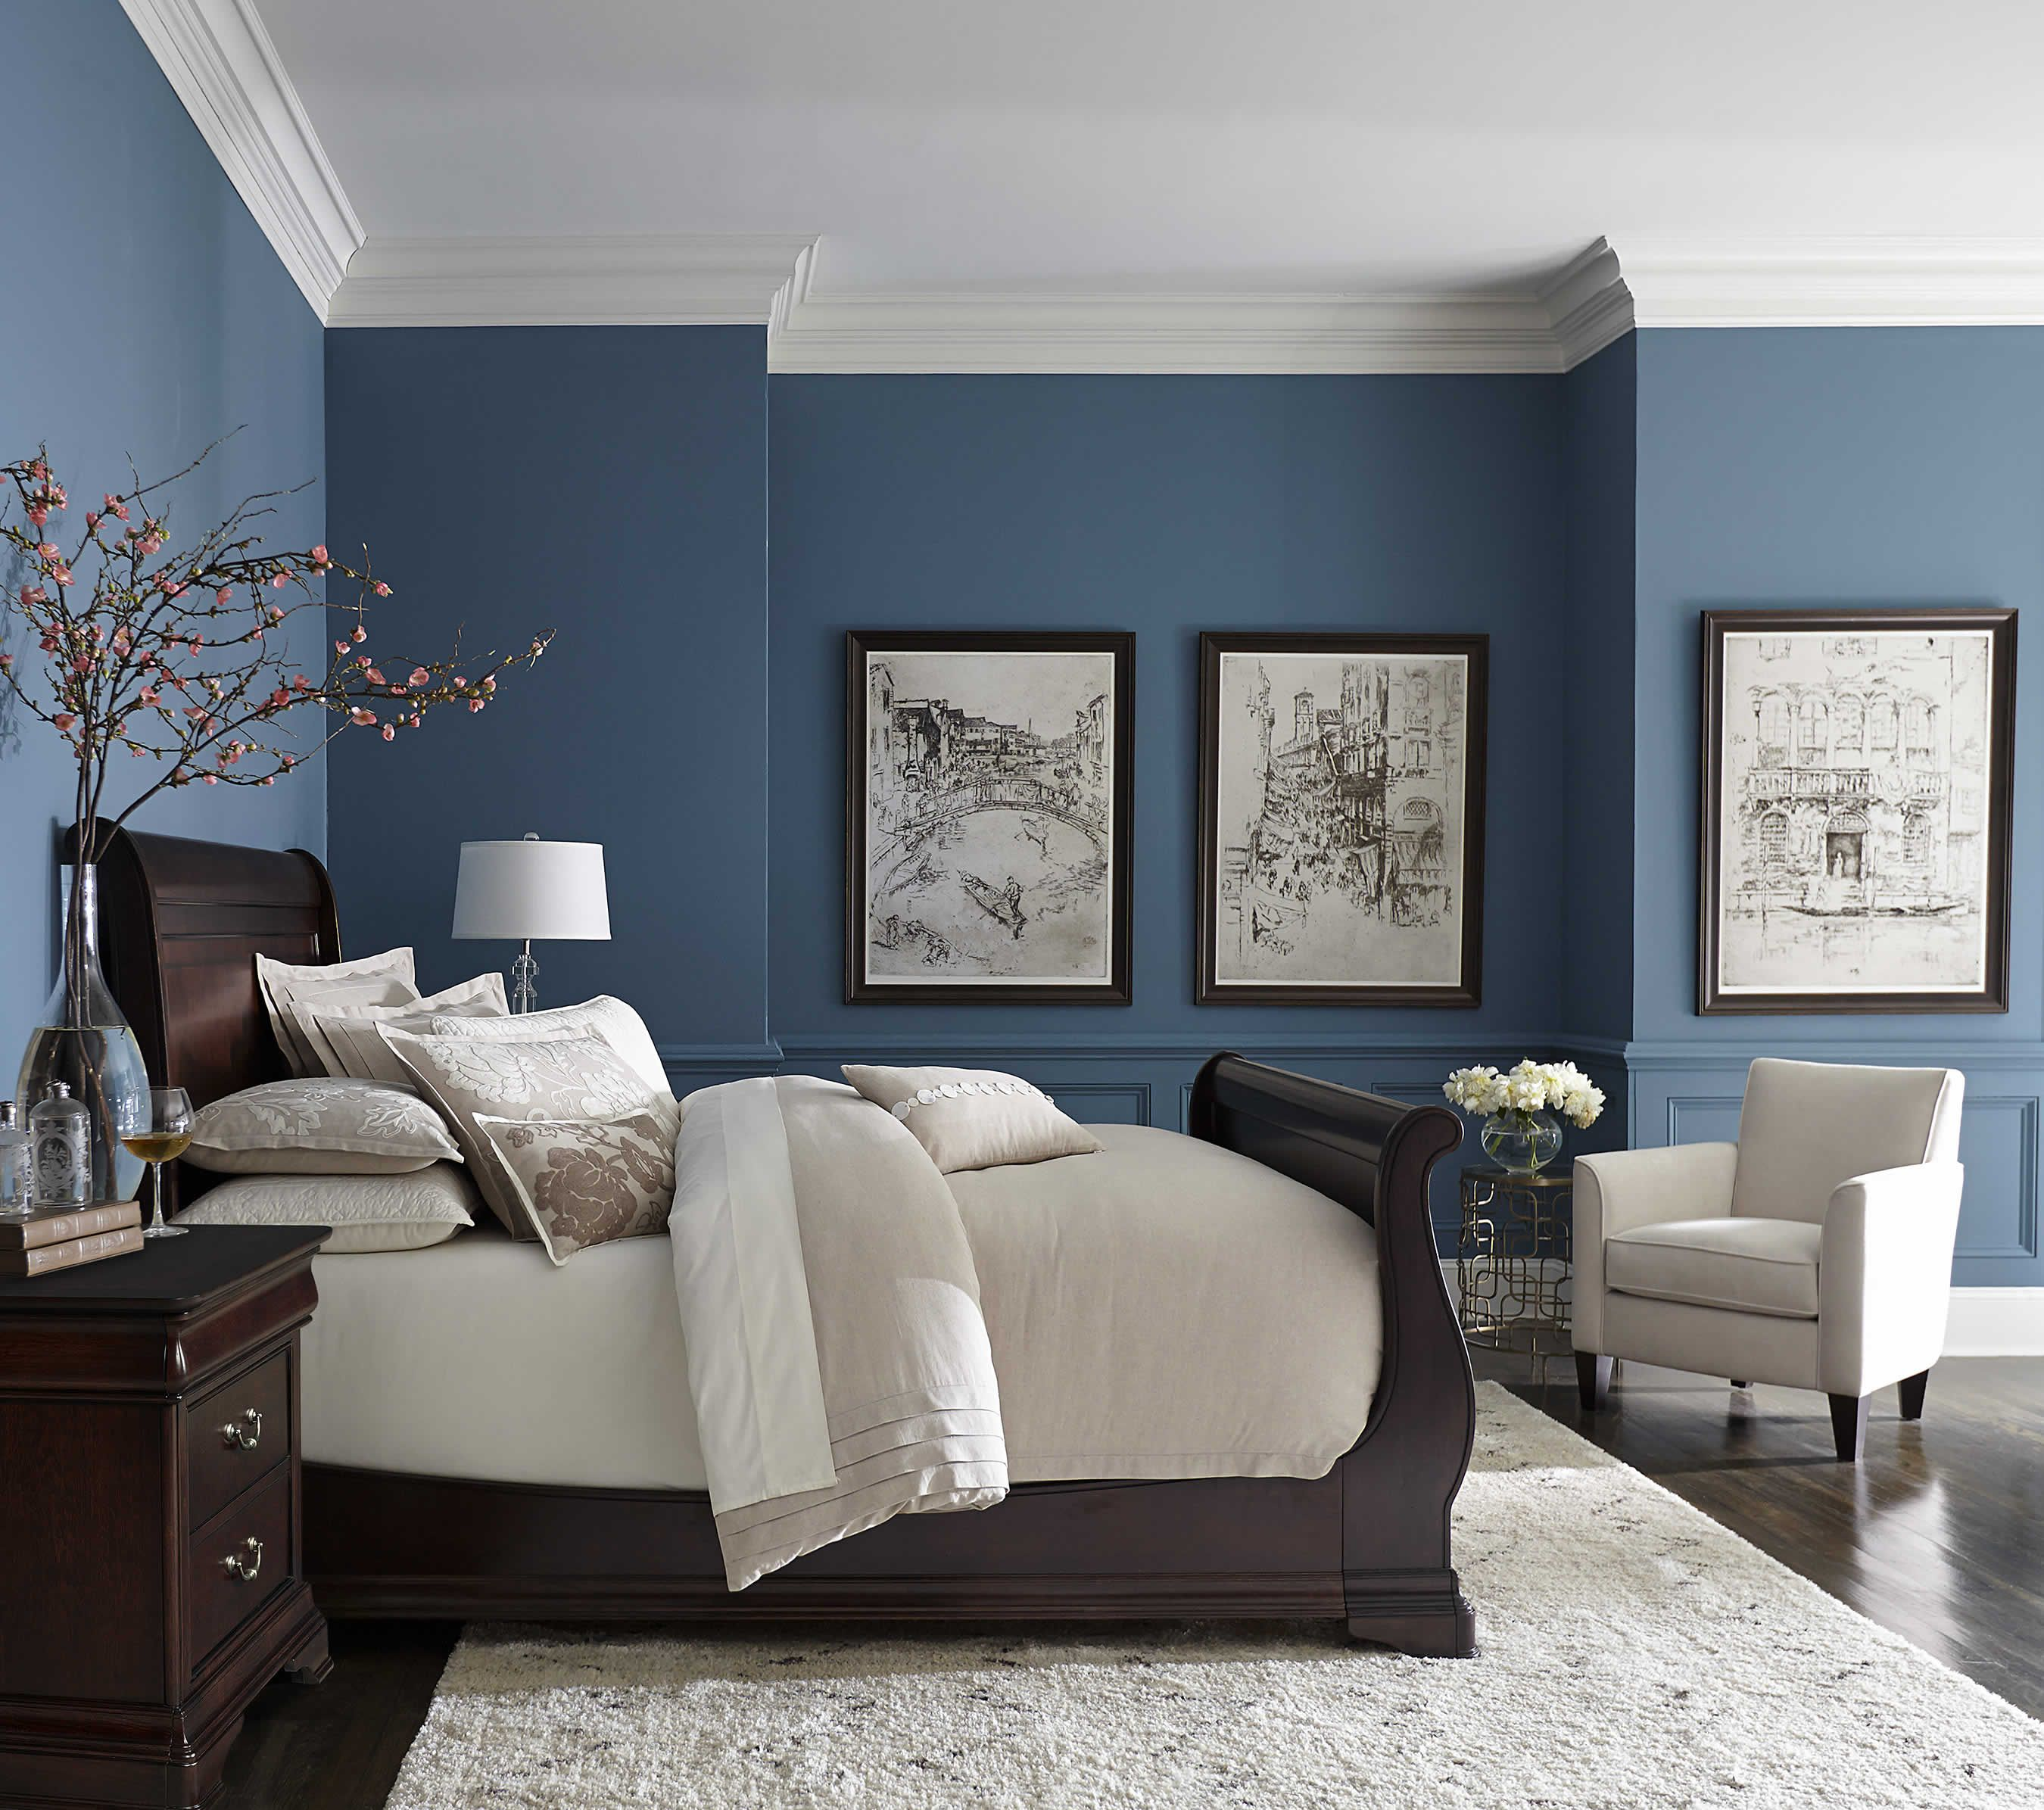 Pretty Blue Color With White Crown Molding Home Pinterest Blue Colors Crown And Bedrooms